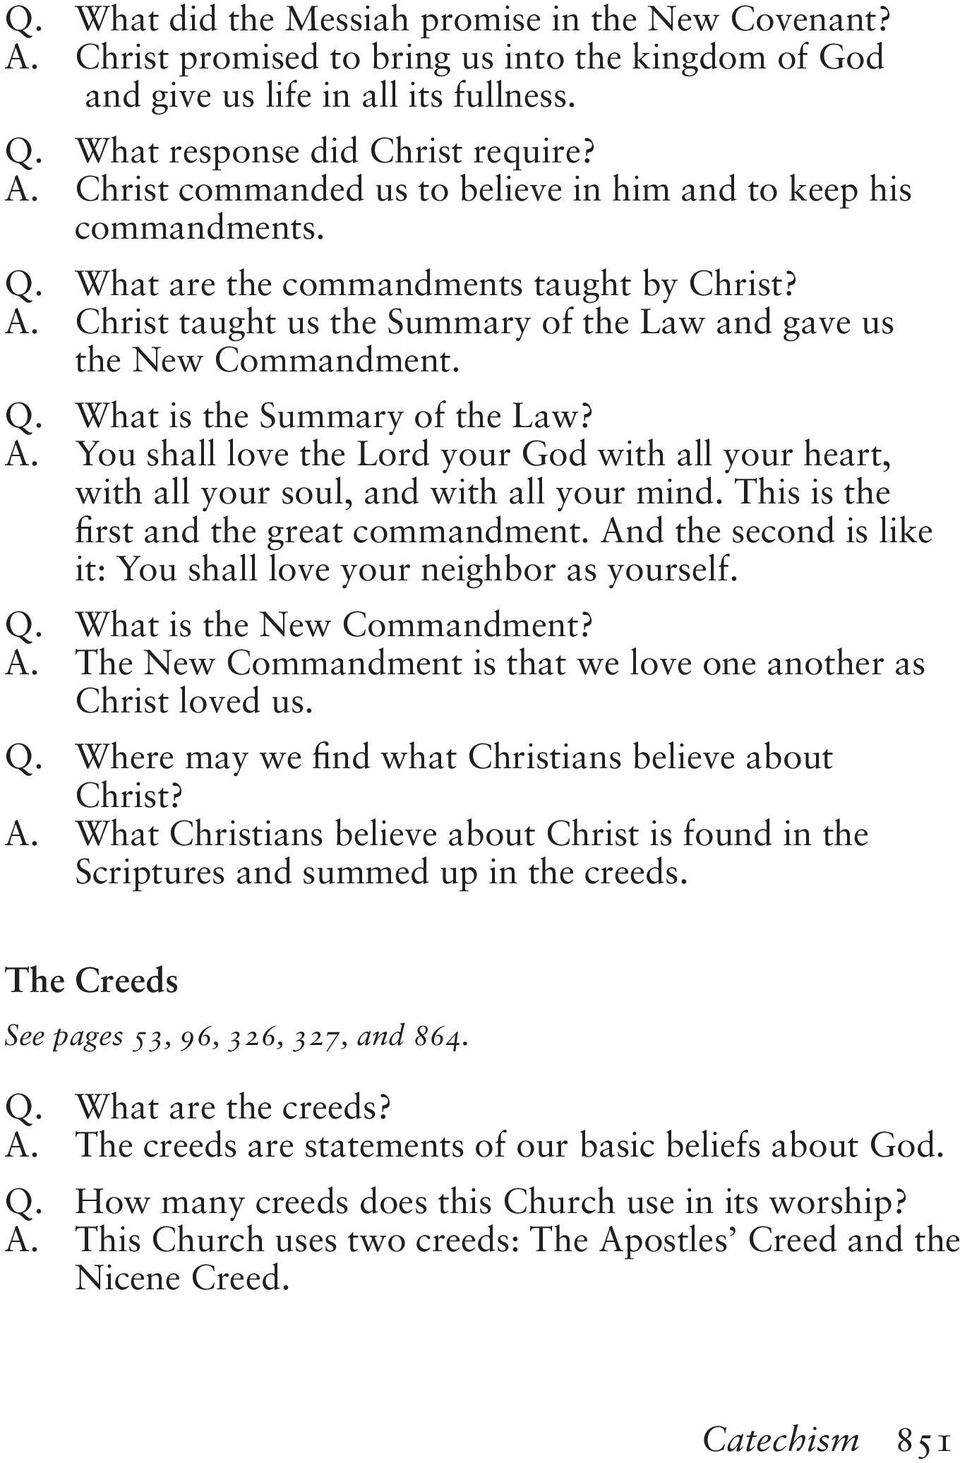 This is the first and the great commandment. And the second is like it: You shall love your neighbor as yourself. Q. What is the New Commandment? A. The New Commandment is that we love one another as Christ loved us.